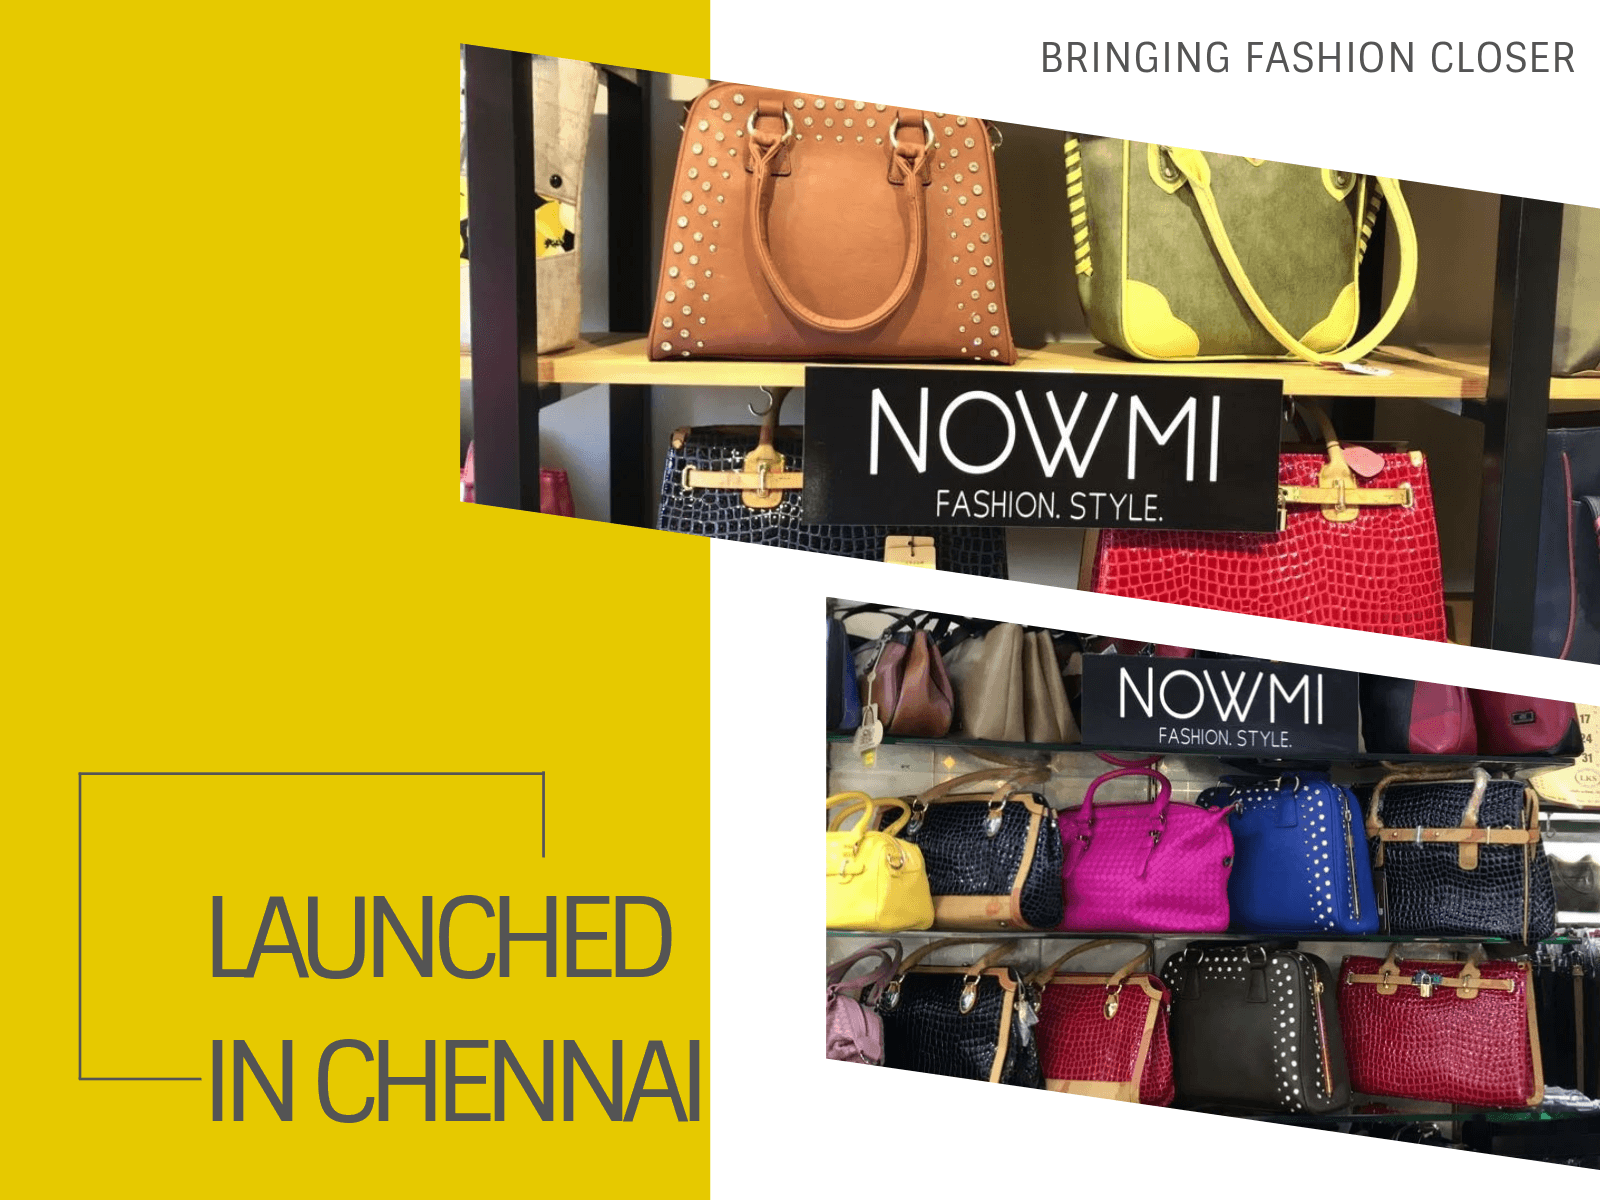 Launch of NOWMI in Chennai